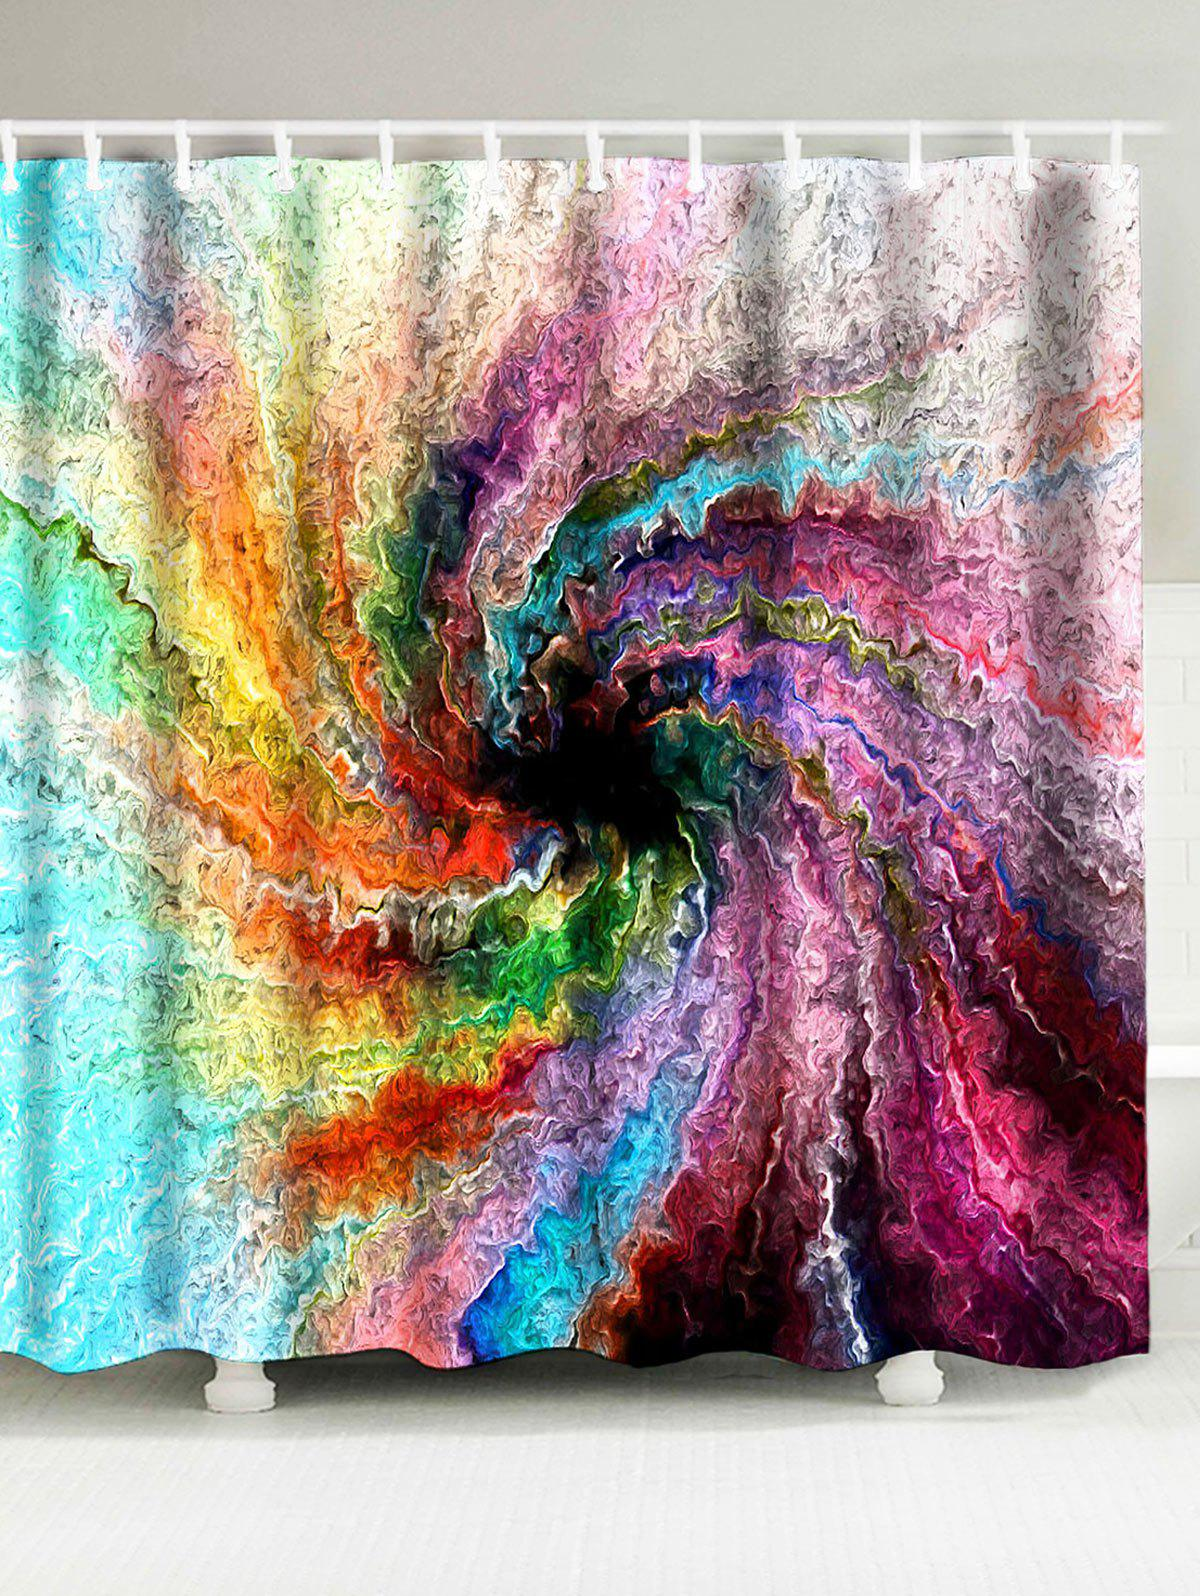 Waterproof Psychedelic Vortex Print Shower Curtain natural landscape waterfall print waterproof shower curtain